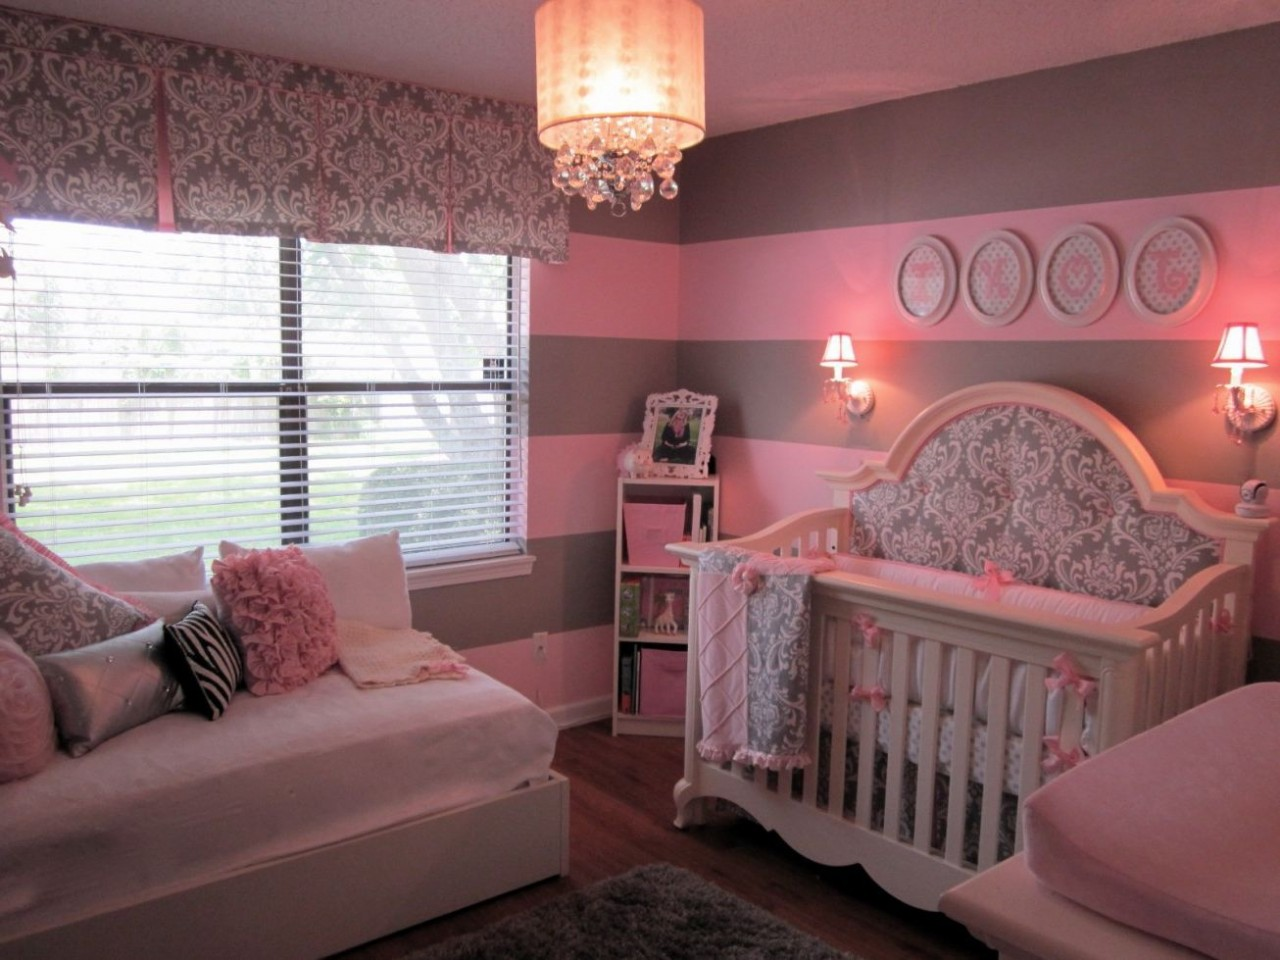 pictures for baby's room decoration